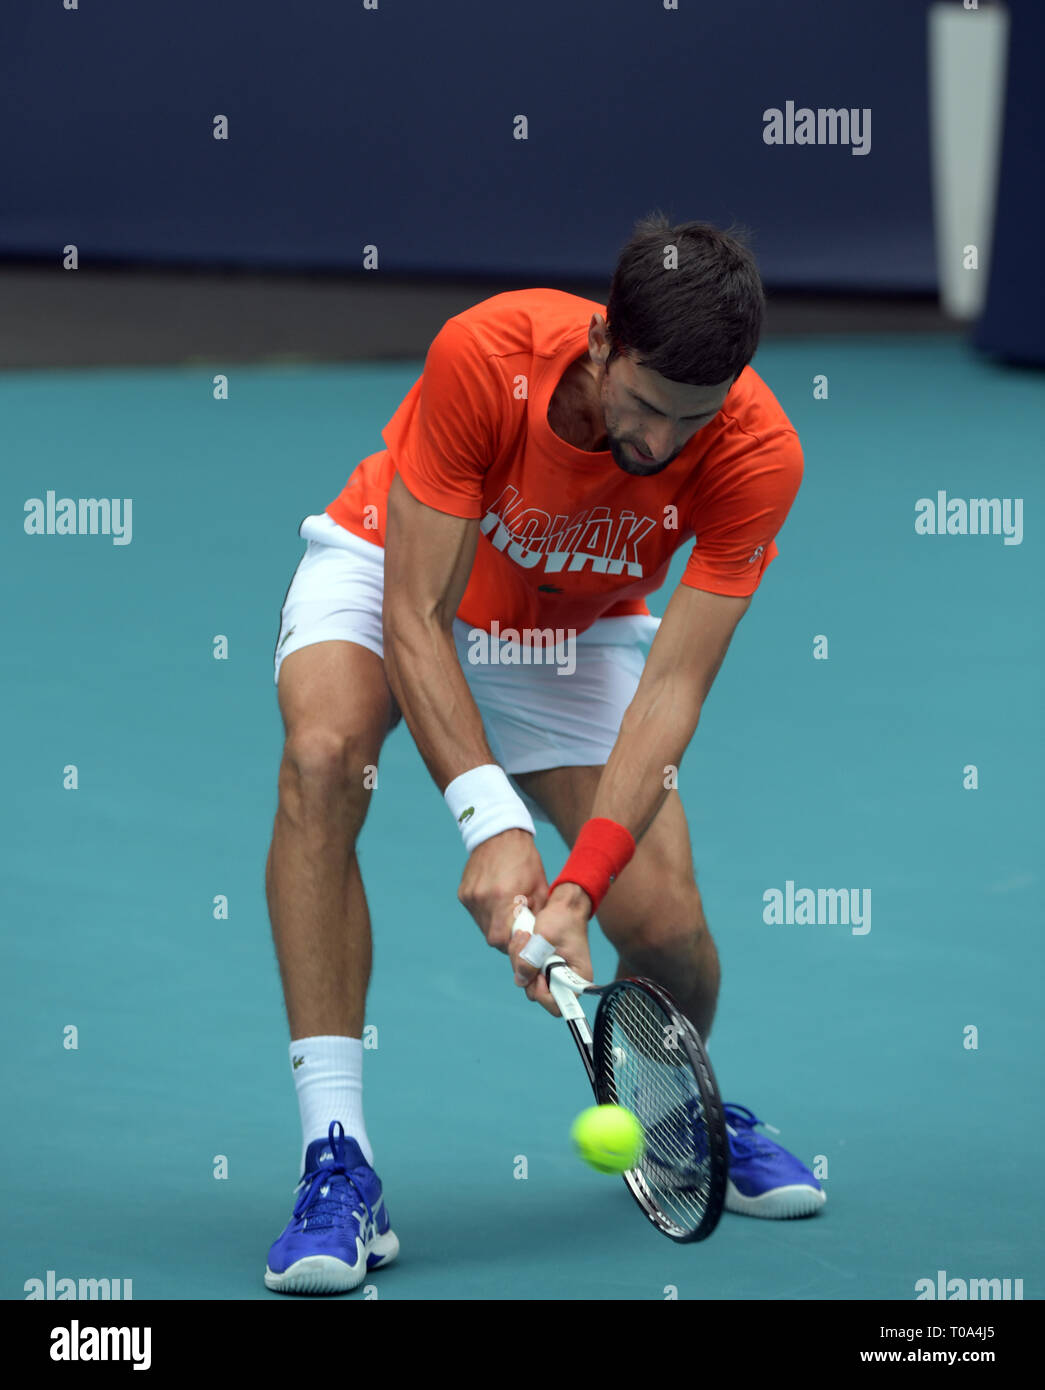 Miami Gardens, Florida, USA. 18th Mar 2019.Novak Djokovic on the practice court prior to the start of the Miami Open Tennis Tournament at Hard Rock Stadium. Novak Djokovic is a Serbian professional tennis player who is currently ranked world No. 1 in men's singles tennis by the Association of Tennis Professiona on March 18, 2019 in Miami Gardens, Florida.  People: Novak Djokovic Credit: Storms Media Group/Alamy Live News - Stock Image